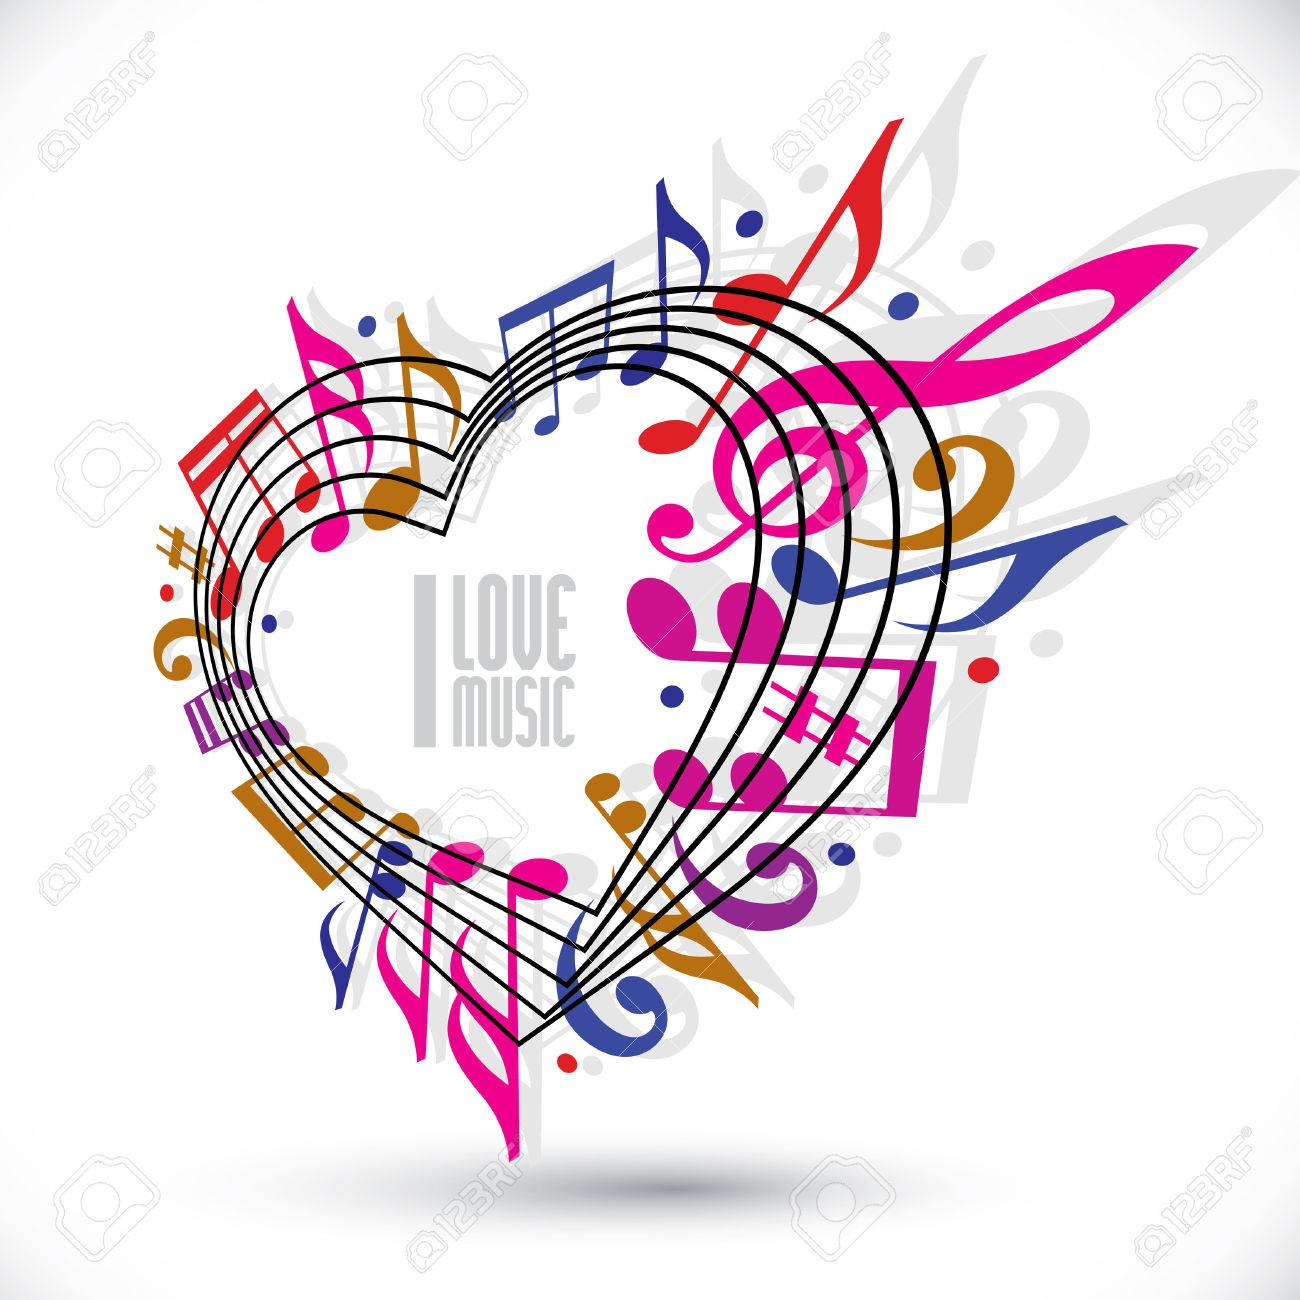 I love music template in red pink and violet colors, rotated in 3d, heart made with musical notes and clef - 30263149